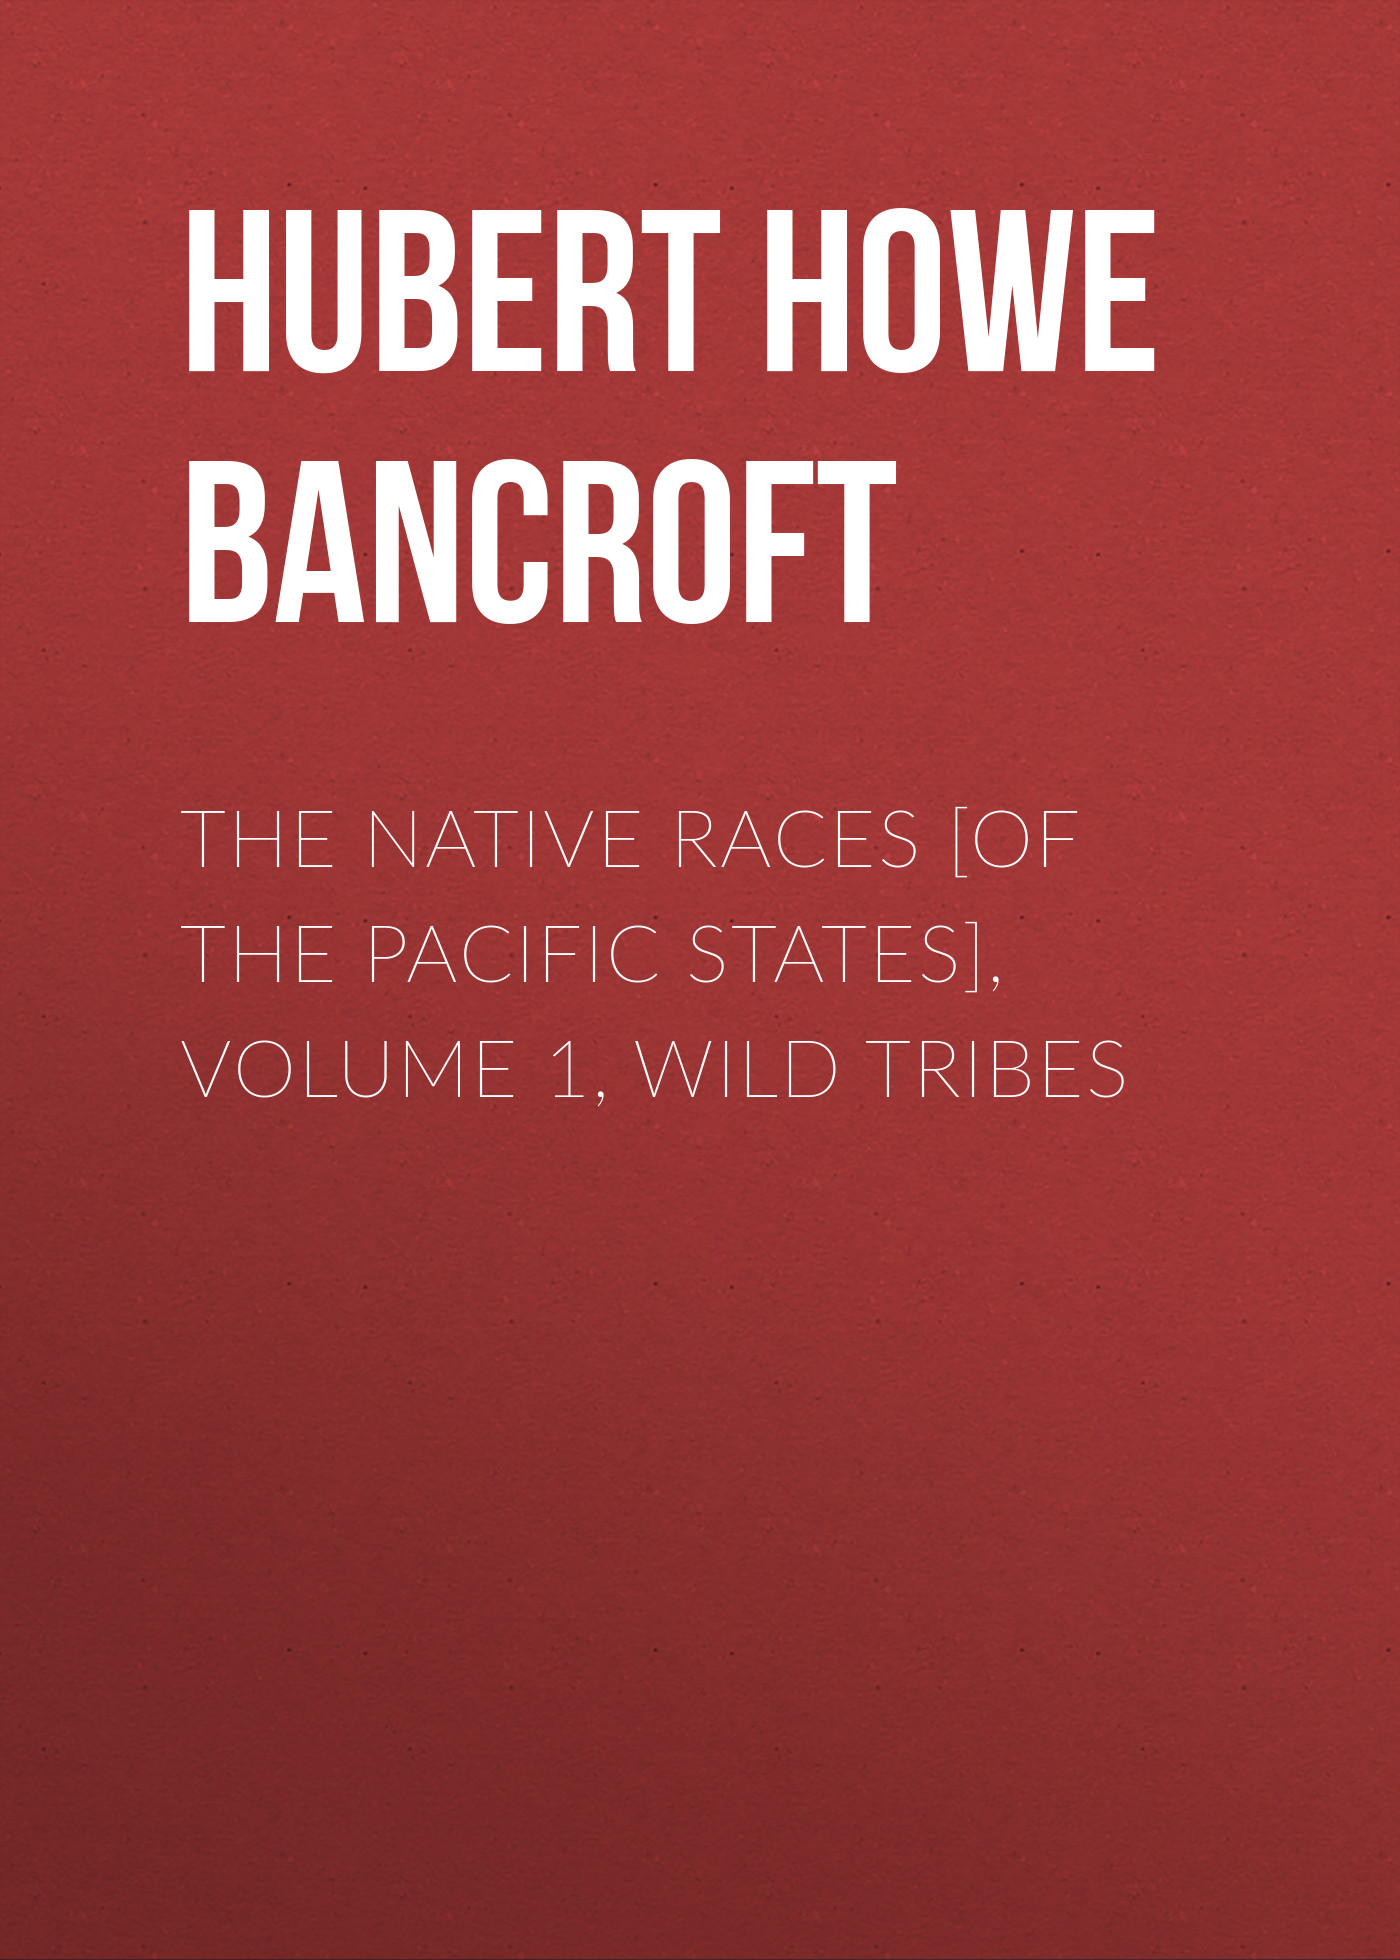 Hubert Howe Bancroft The Native Races [of the Pacific states], Volume 1, Wild Tribes